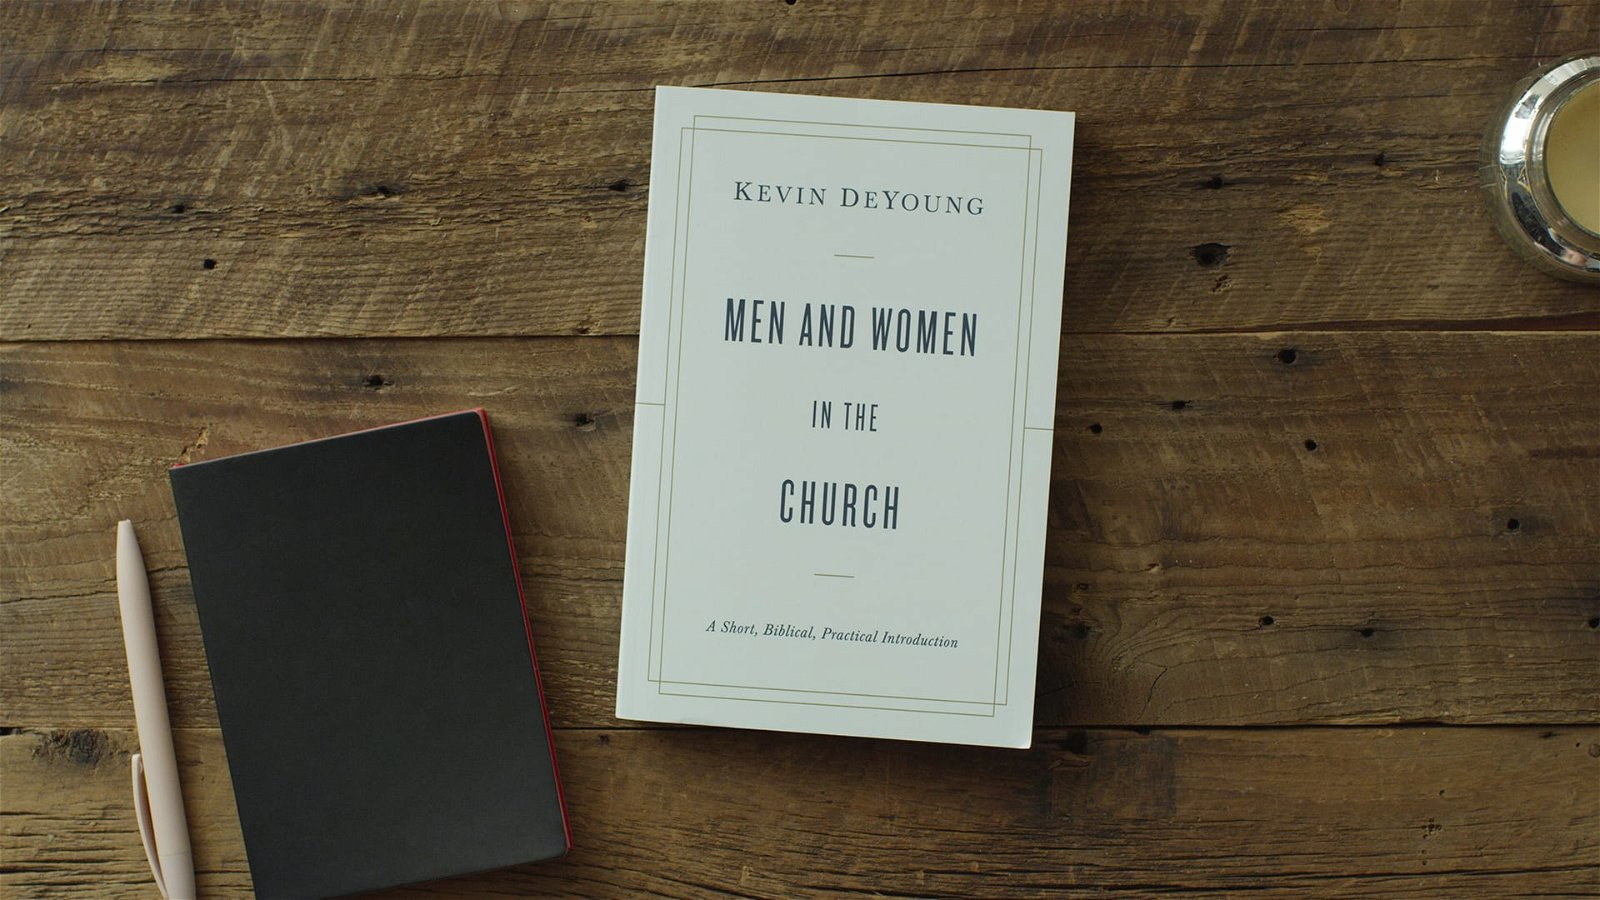 Men and Women in the Church by Kevin DeYoung